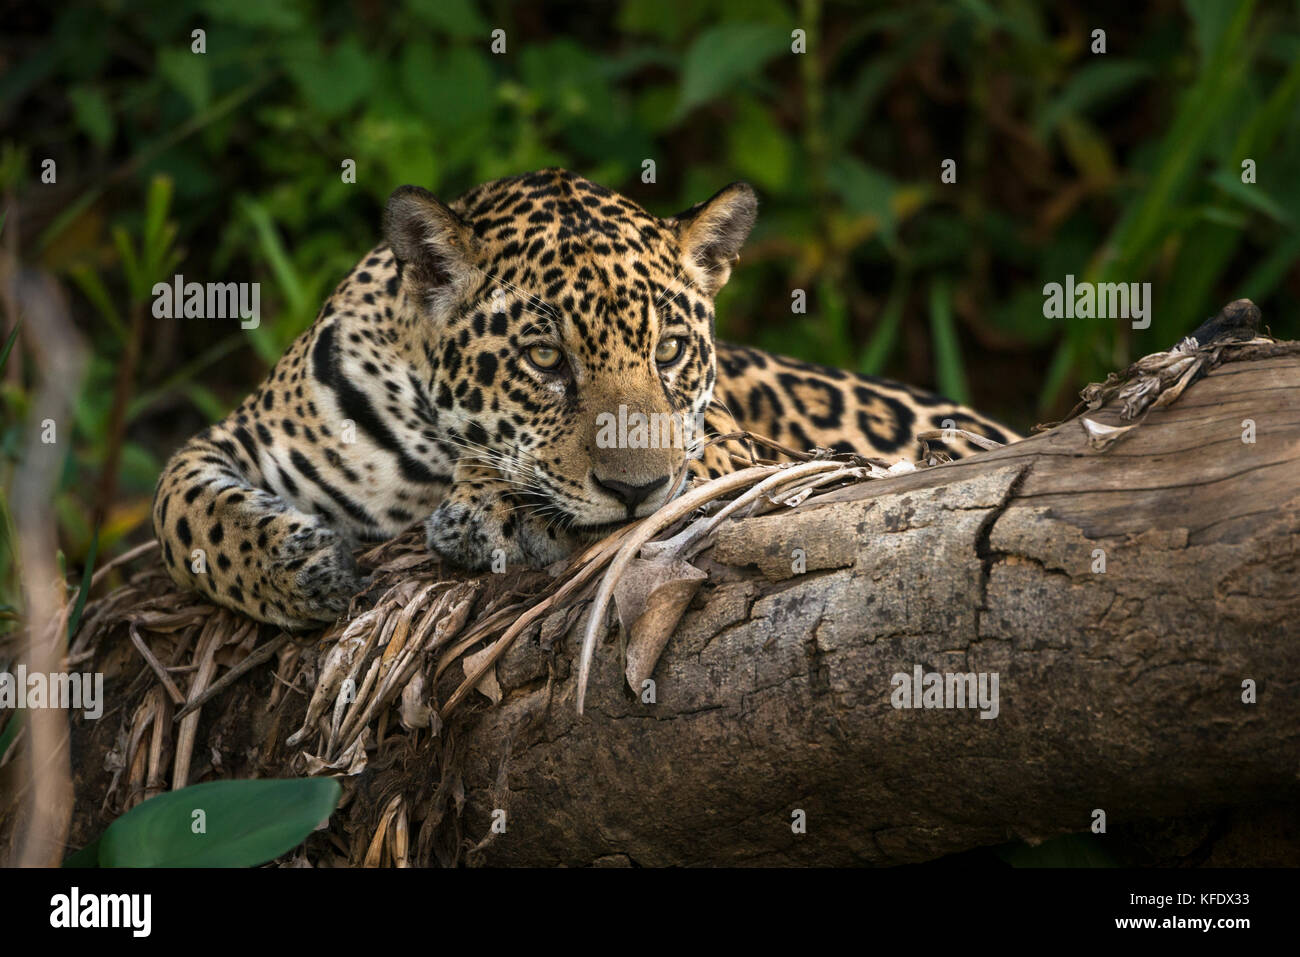 Jaguar resting on a dead tree in the Pantanal - Stock Image